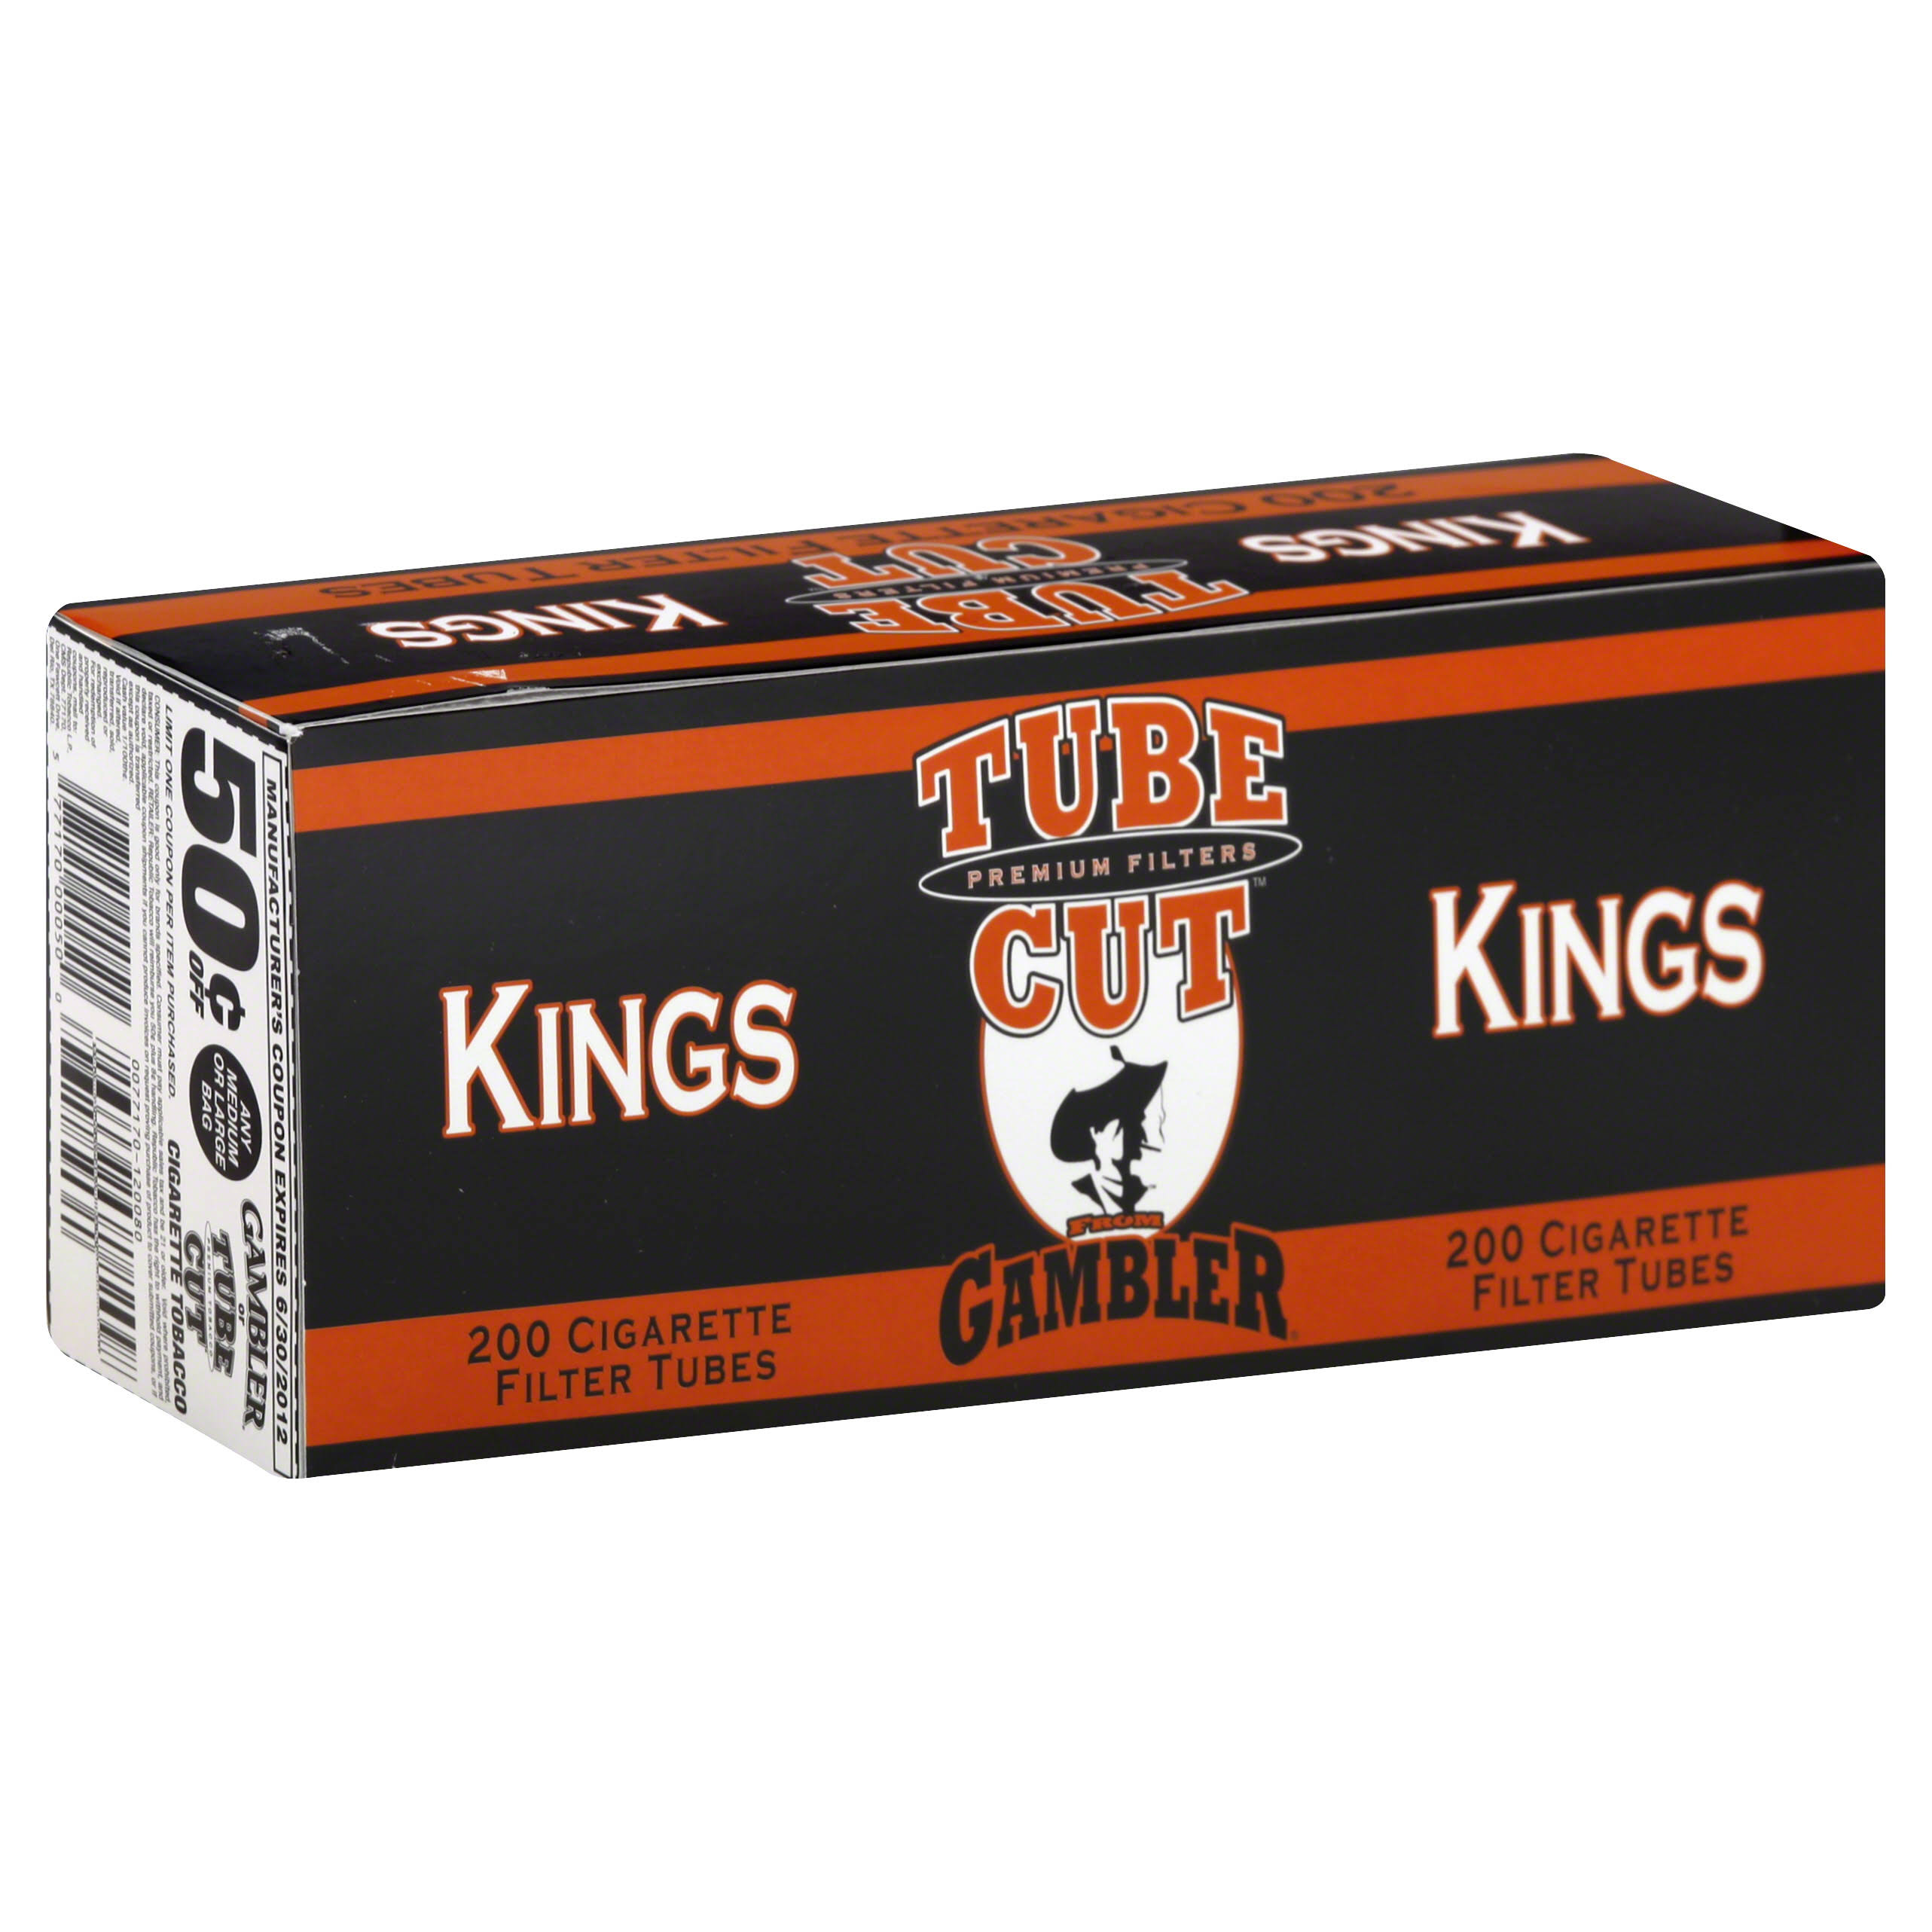 Gambler TubeCut Cigarette Filter Tubes, Kings - 200 tubes